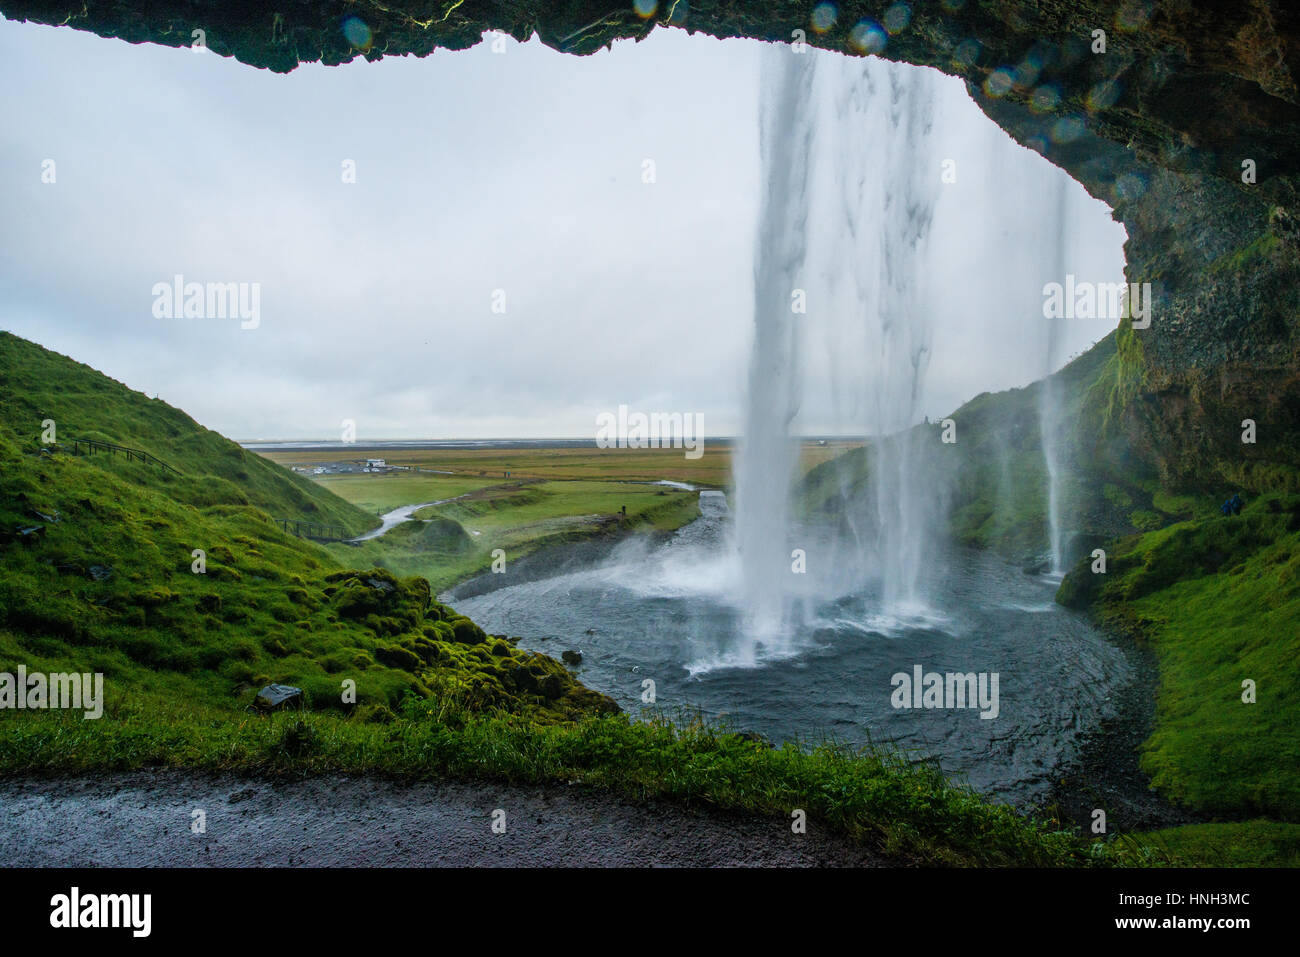 Natural water landscapes - Stock Image